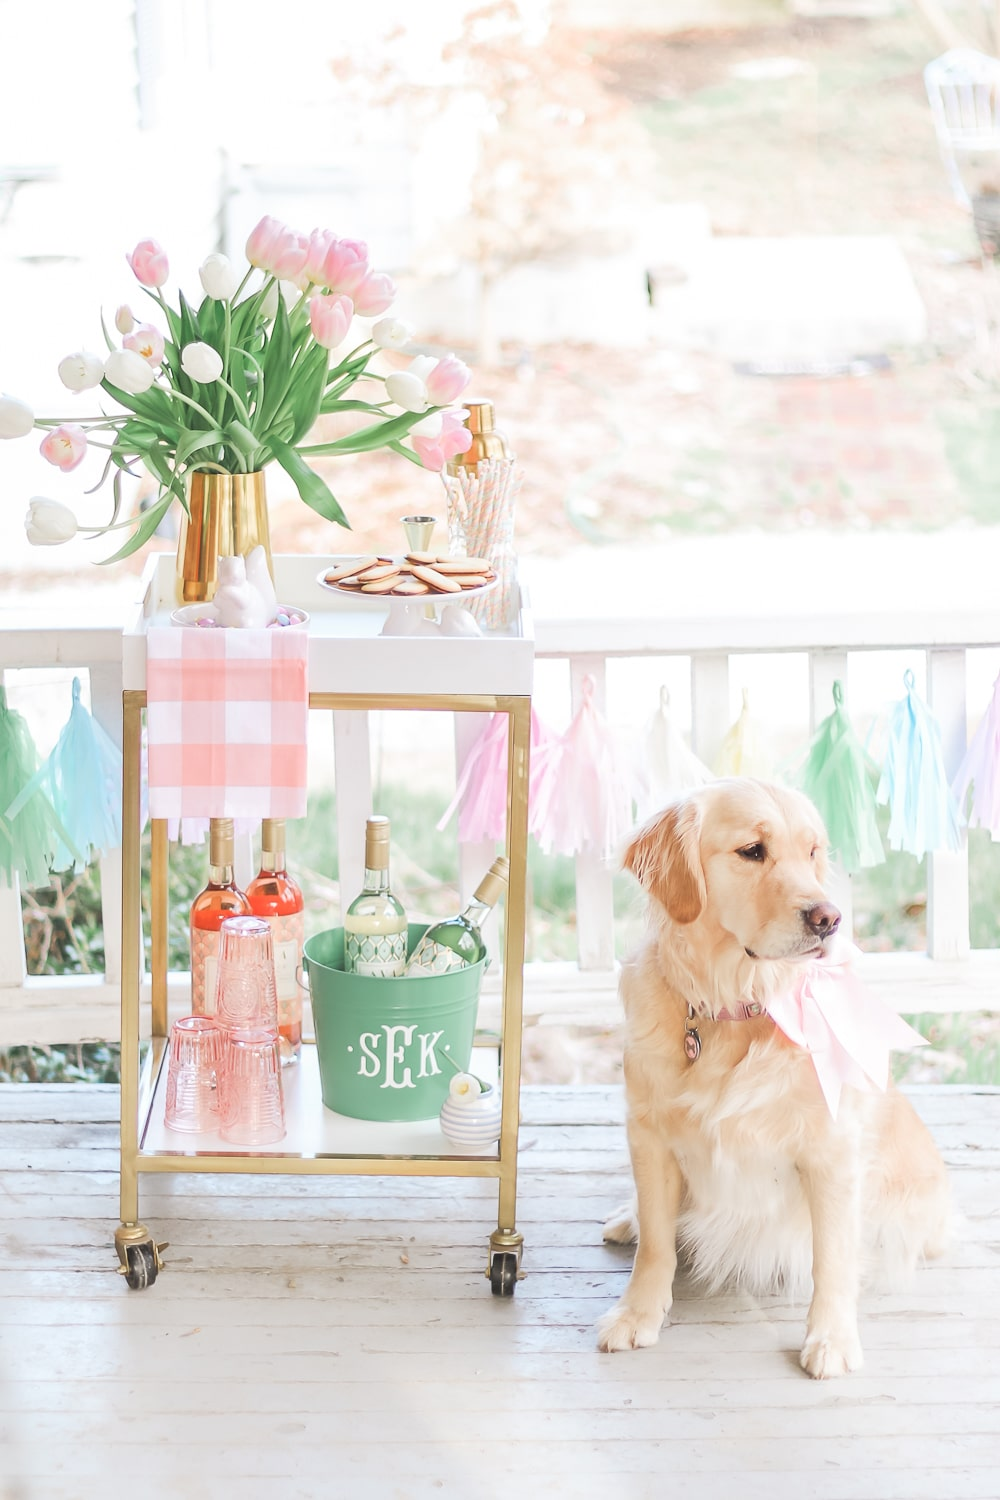 Spring bar cart styling ideas by southern lifestyle blogger Stephanie Ziajka on Diary of a Debutante